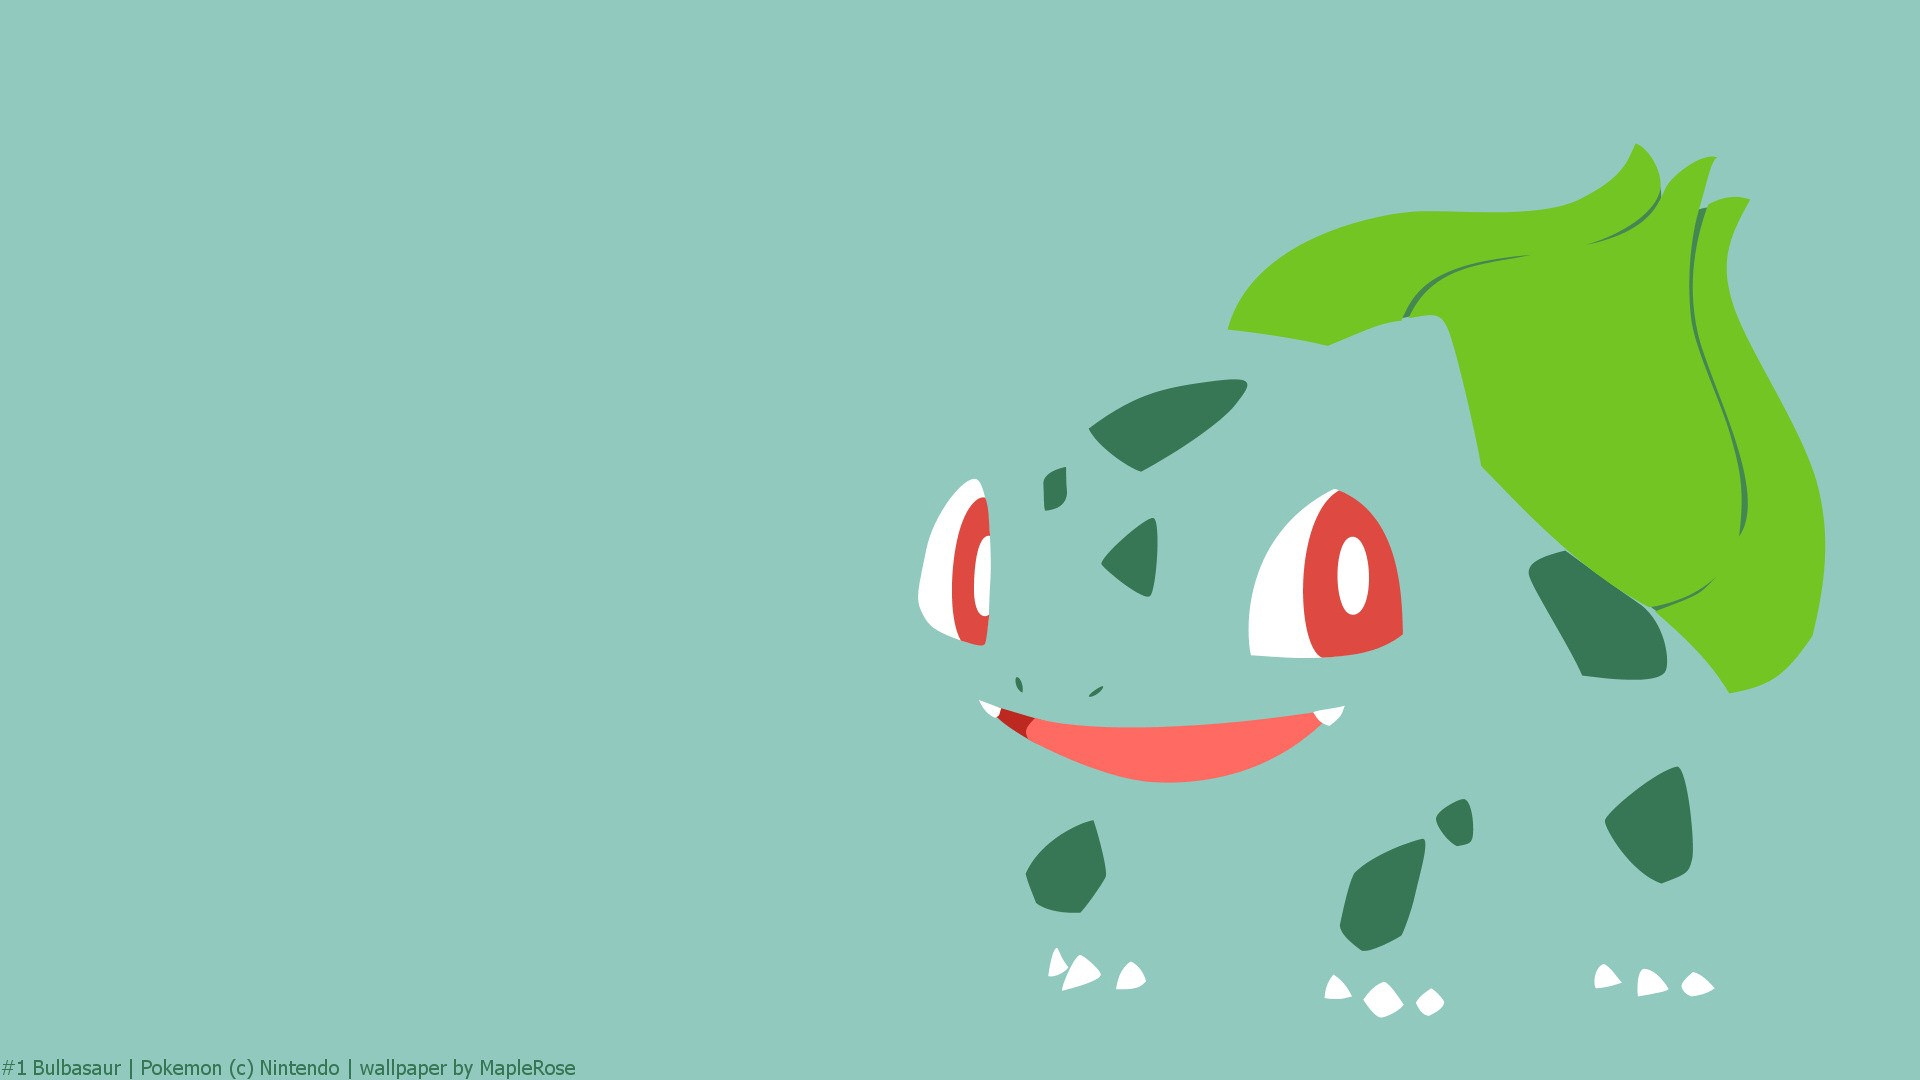 Download wallpaper 1920x1080 bulbasaur pokemon drawing hd background 1920x1080